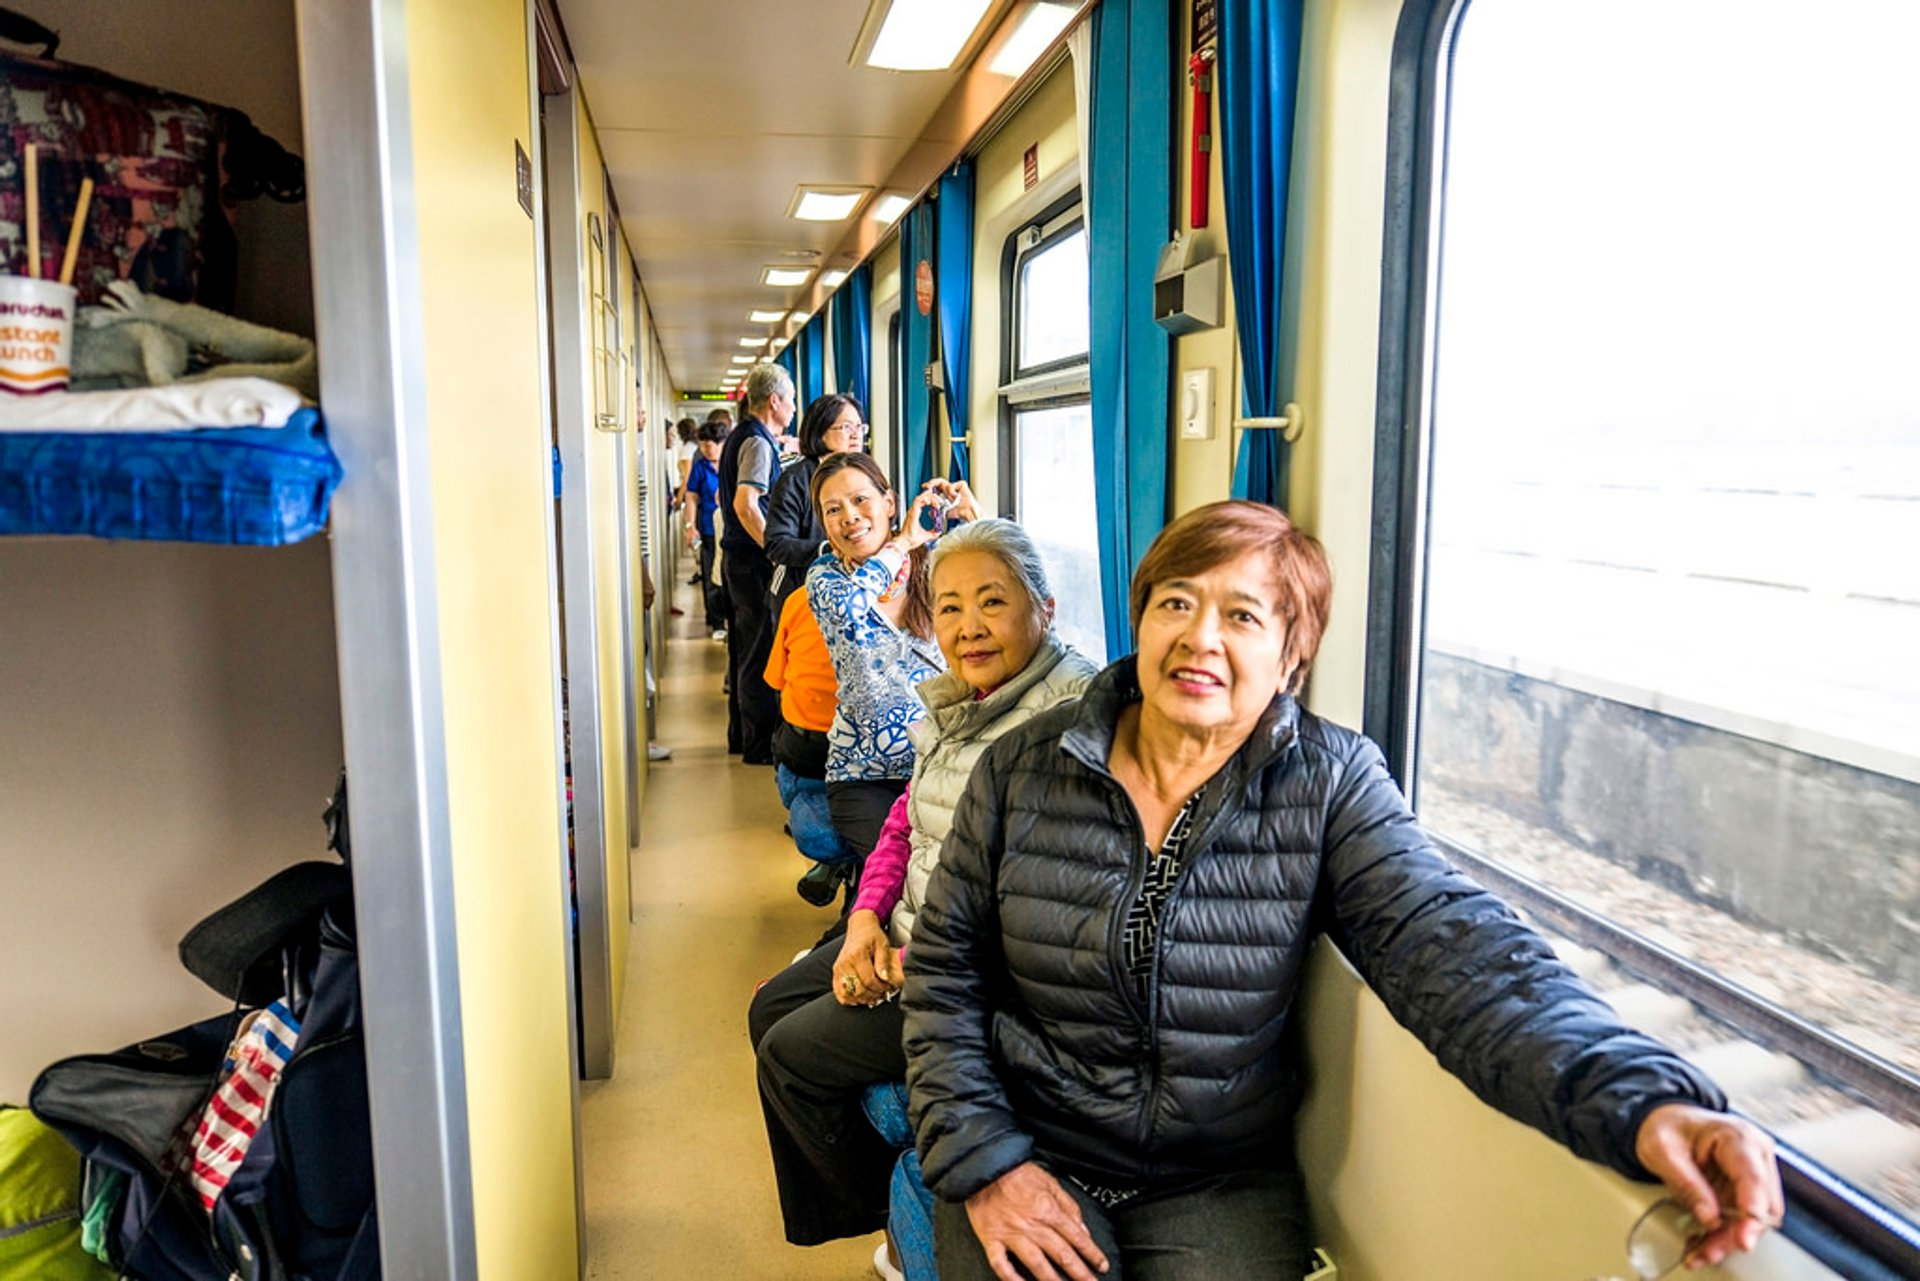 Train ride from Xining to Lhasa, Tibet, China 2019